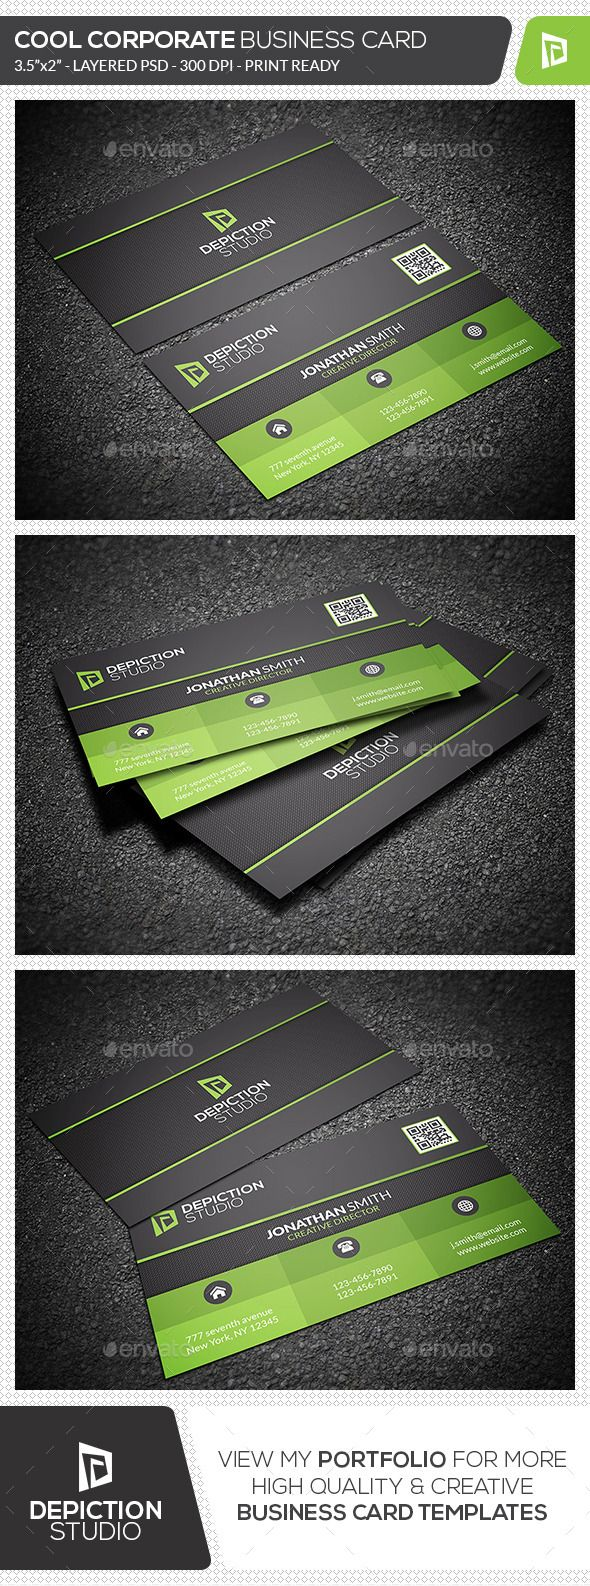 Cool Corporate Business Card - Corporate Business Card Template PSD. Download here: http://graphicriver.net/item/cool-corporate-business-card/11955700?s_rank=1790&ref=yinkira